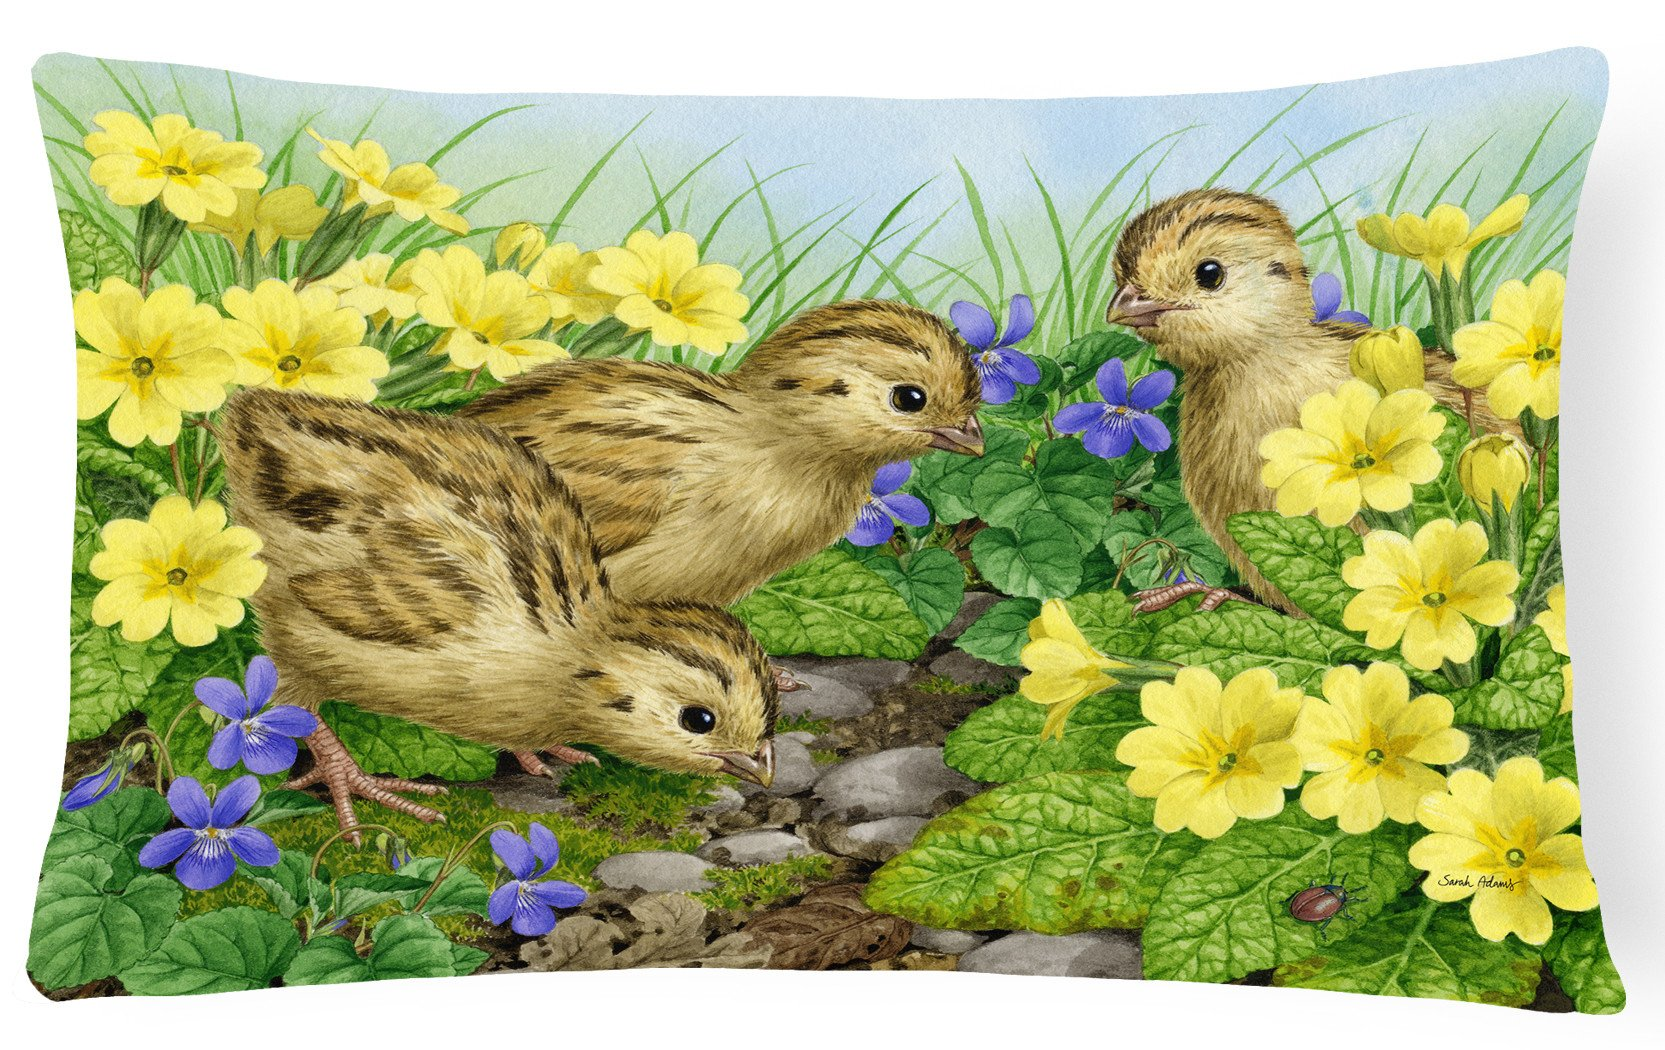 Pheasant Chicks Fabric Decorative Pillow ASA2177PW1216 by Caroline's Treasures